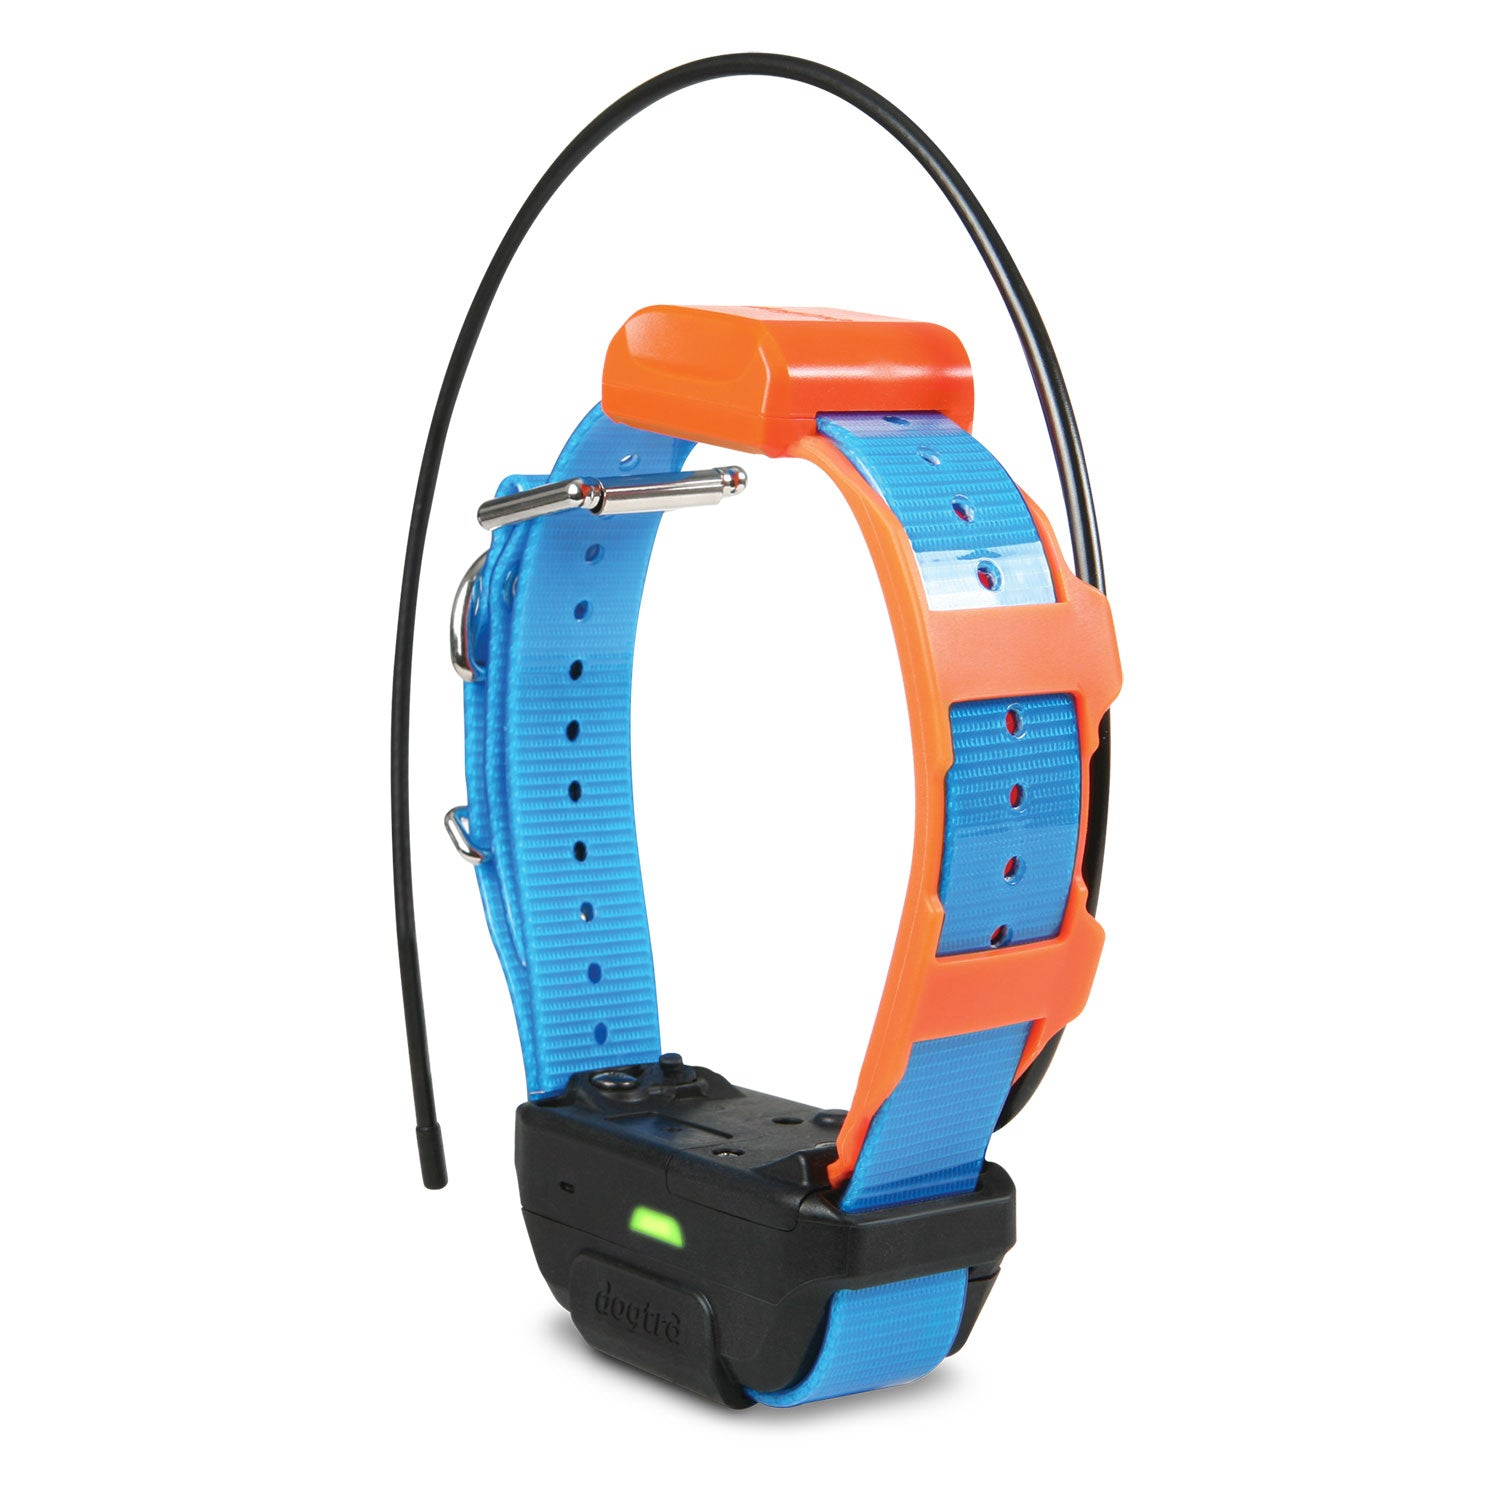 Dogtra Pathfinder TRX Tracking Only Collar Blue Dog GPS Tracking - London the Local